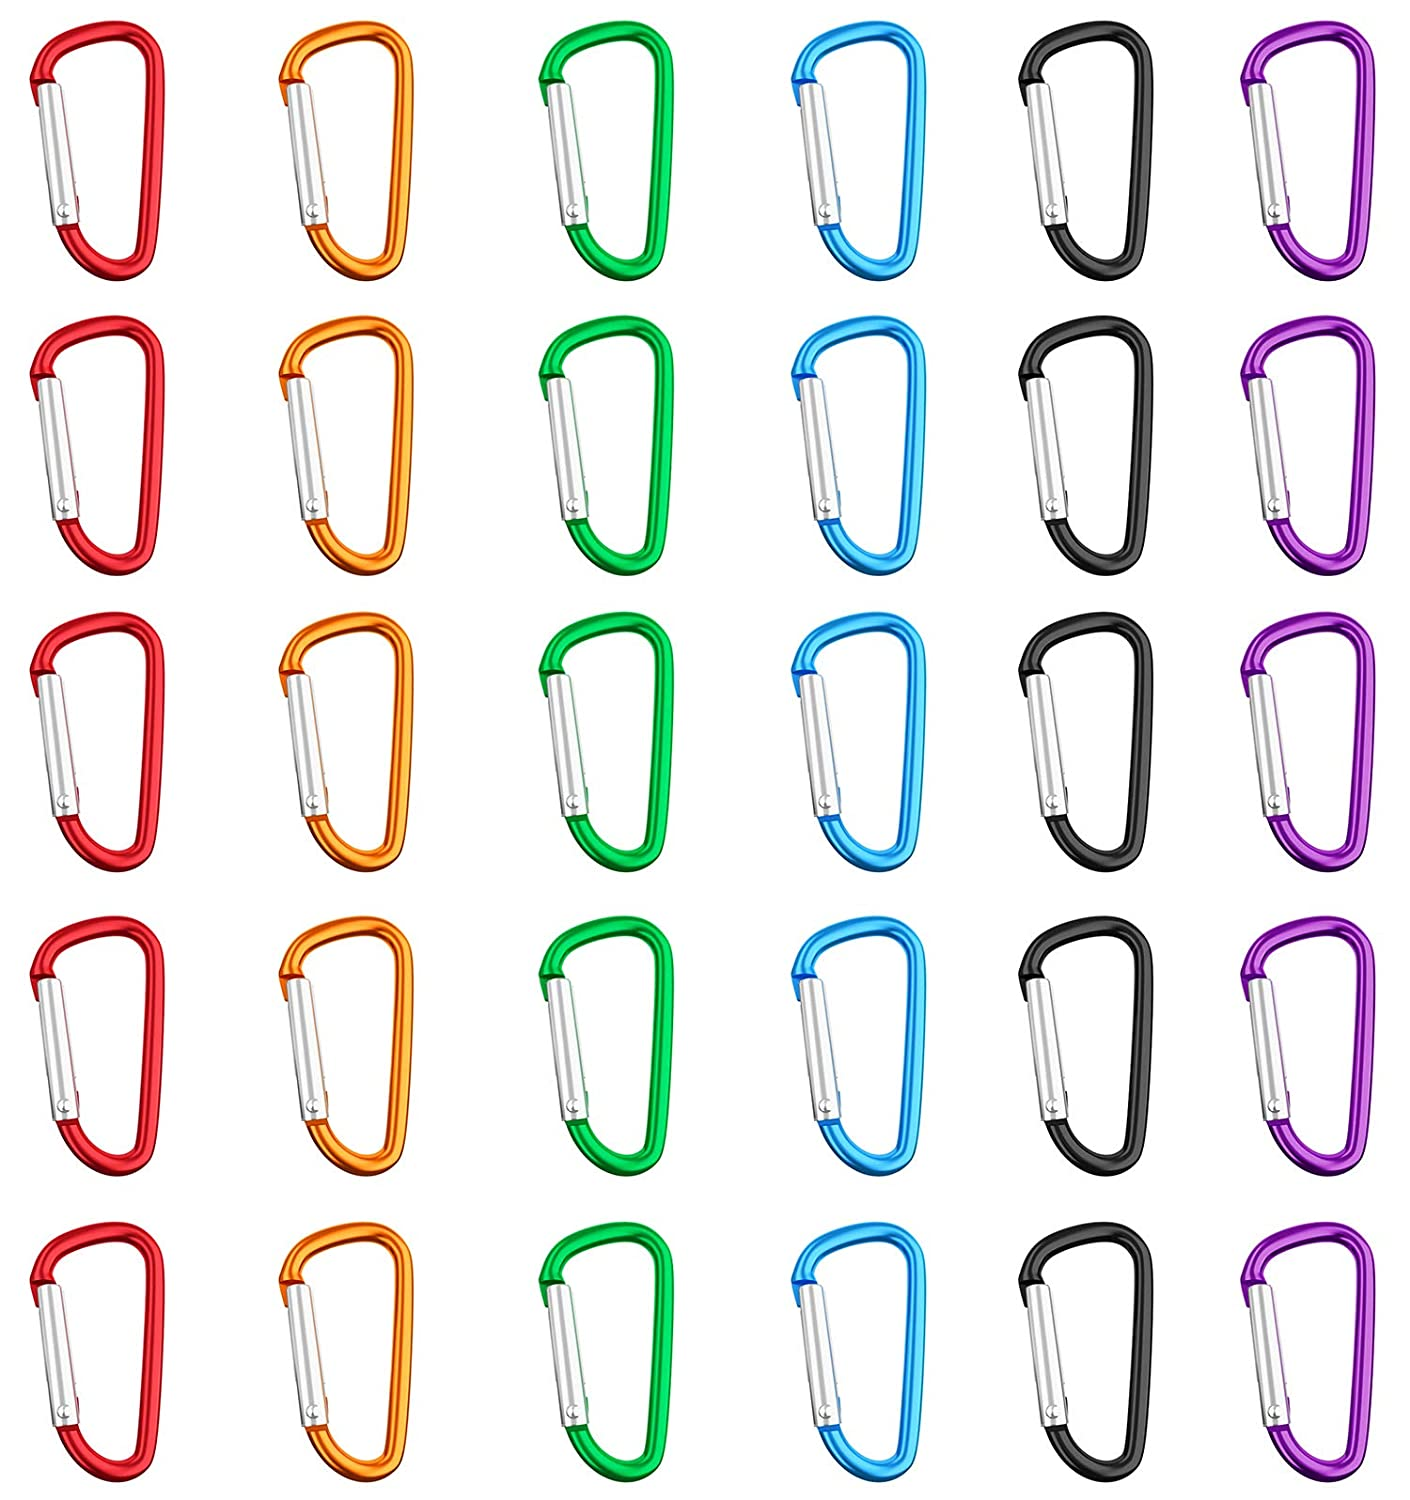 Amandir 30 Pcs 2''/5cm Aluminum D Ring Carabiner Clip D Shape Spring Loaded Gate Small Climbing Carabiner Keychain Set for Camping, Backpack, Fishing, Hiking, Traveling